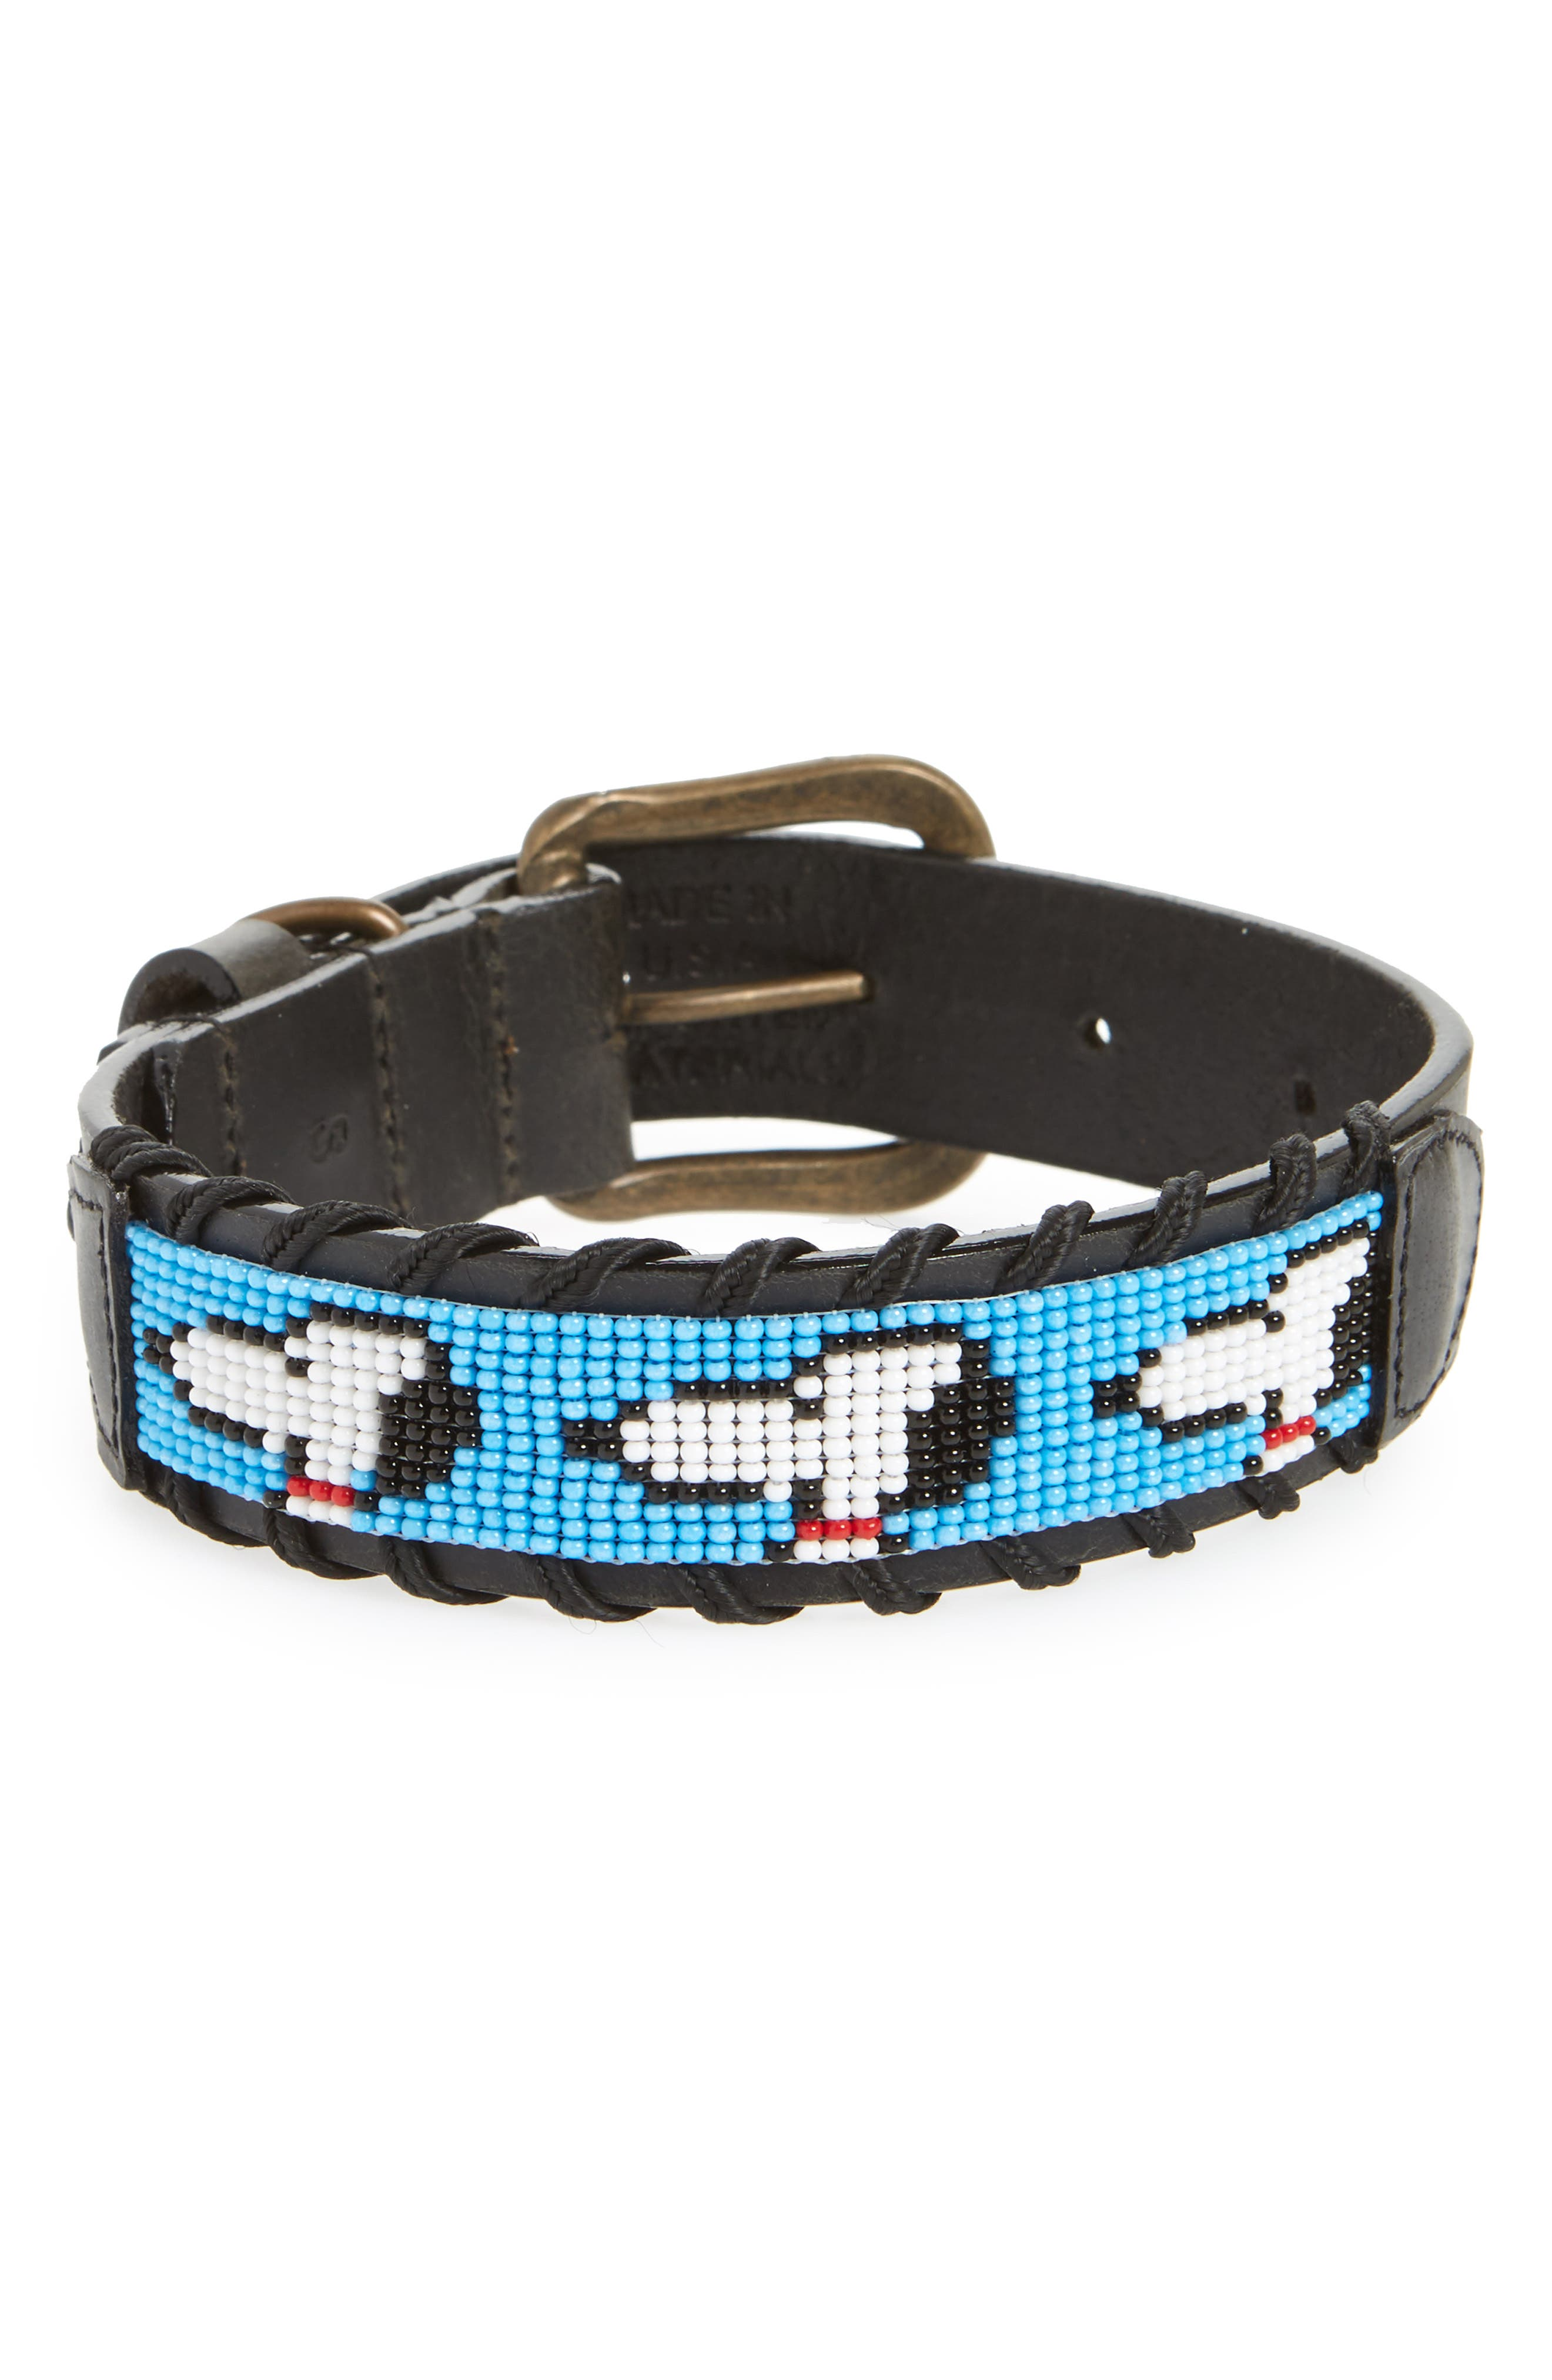 Peanuts - Snoopy Silhouette Beaded Dog Collar,                         Main,                         color, Black